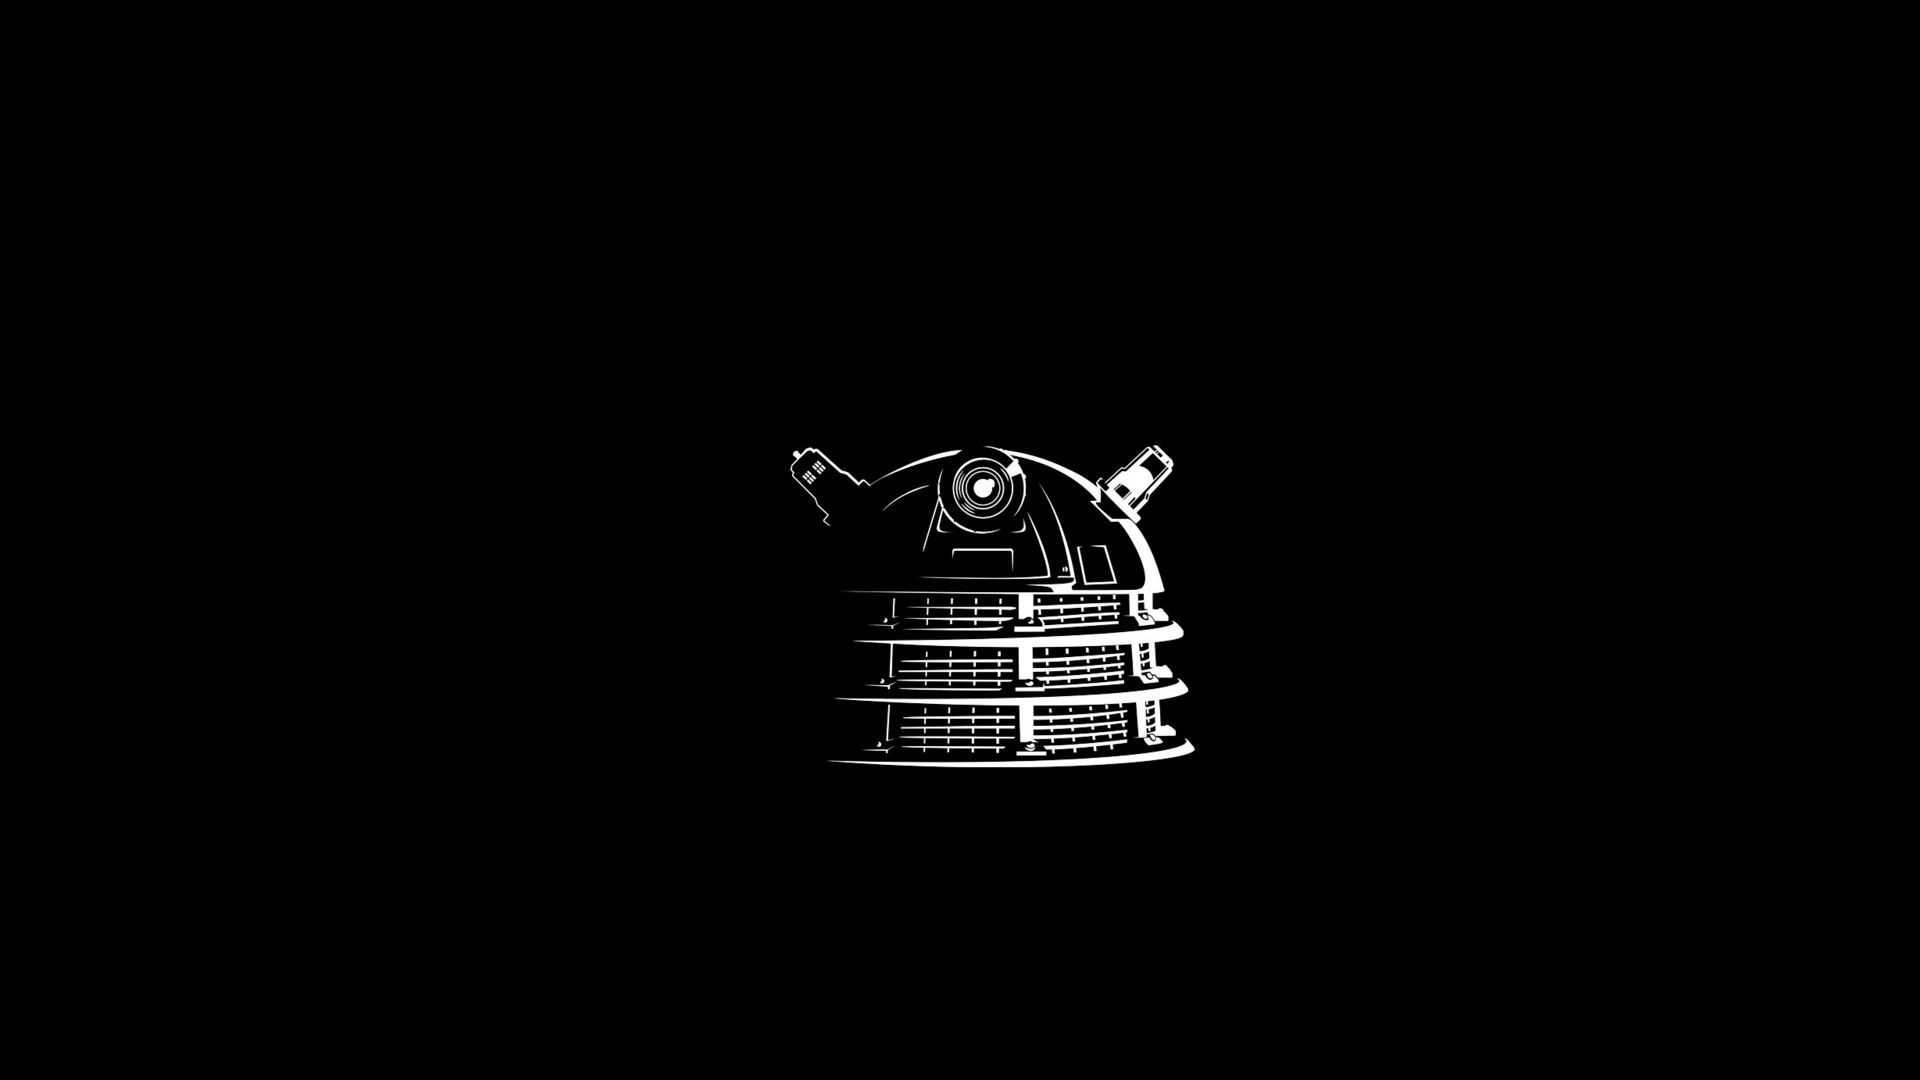 Doctor Who Wallpaper 4k uhd